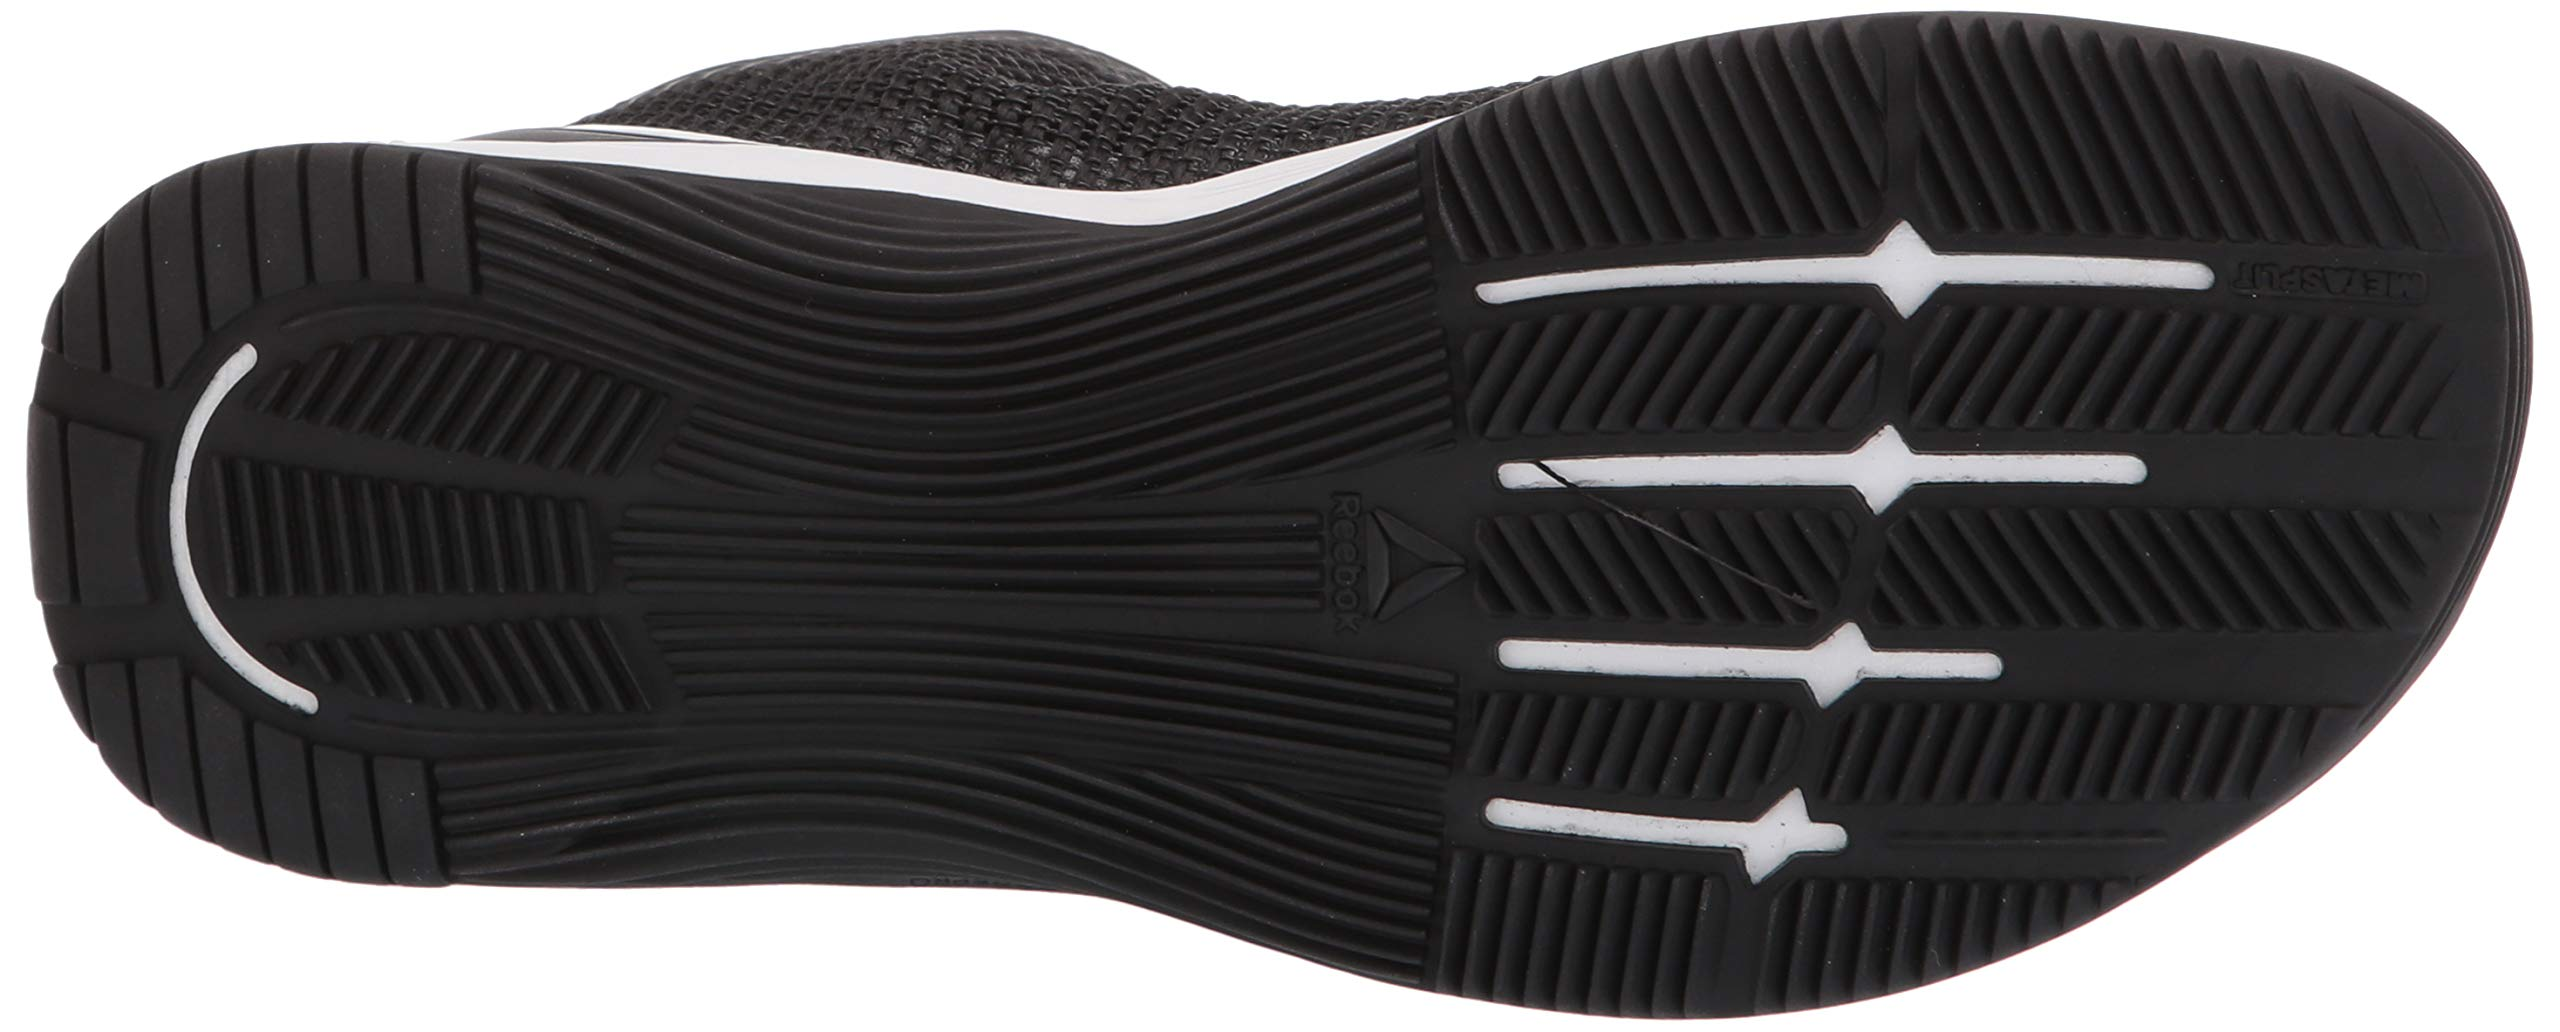 Reebok Women's CROSSFIT Nano 8.0 Flexweave Cross Trainer, Black/White, 5 M US by Reebok (Image #3)